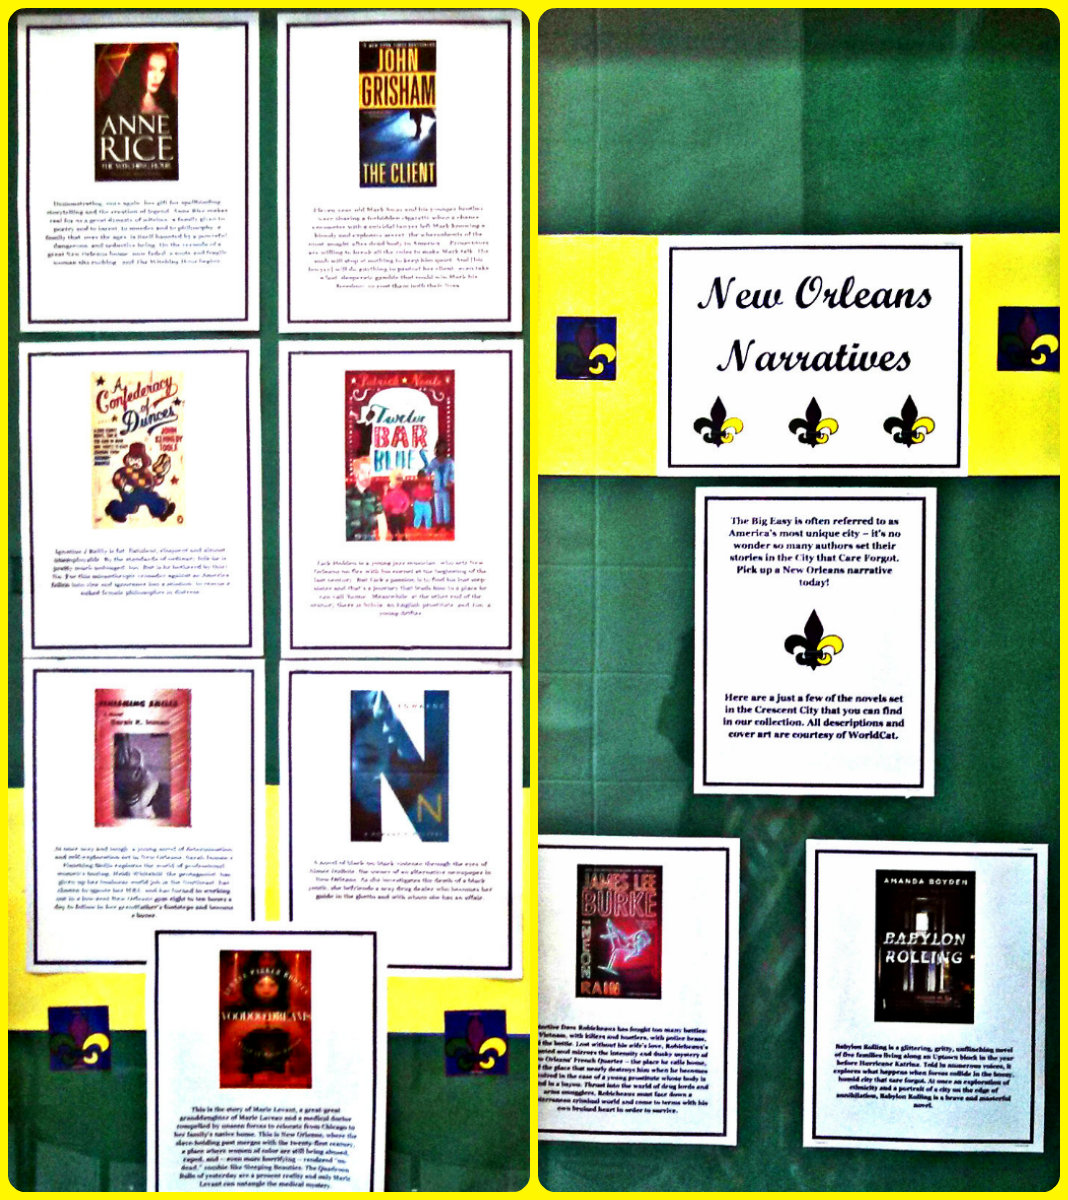 New Olreans Narratives display